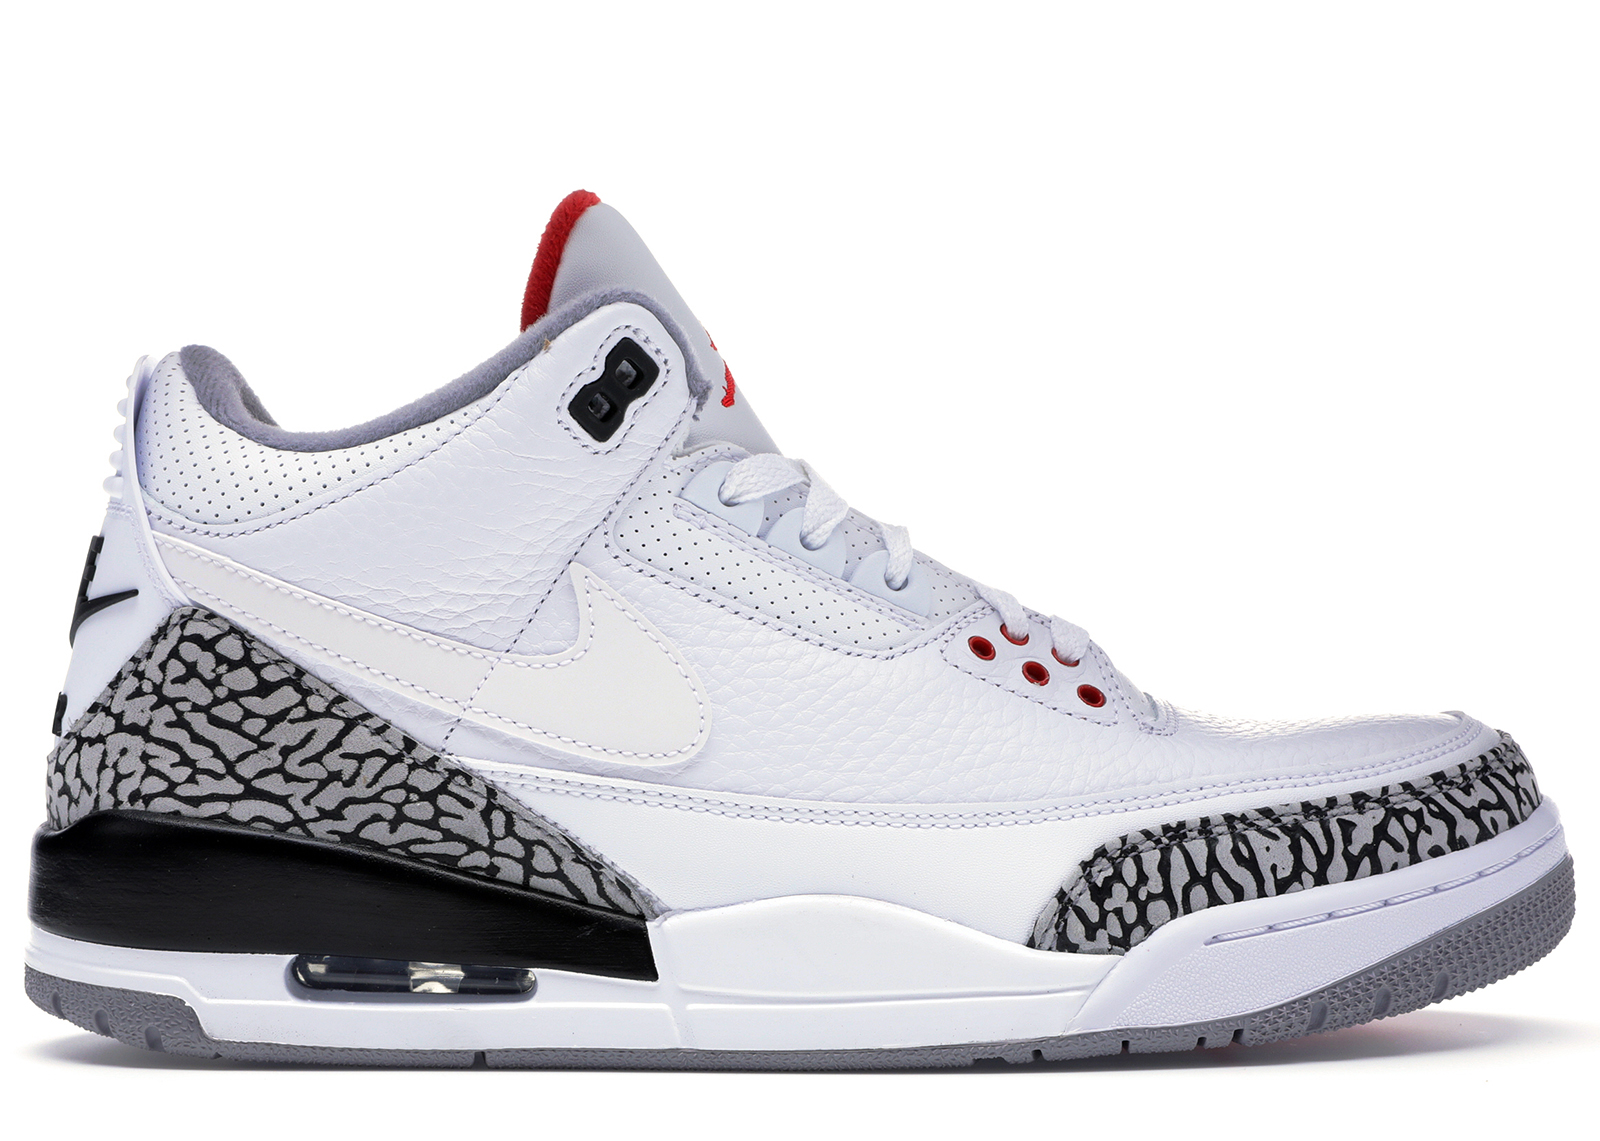 Air Jordan 3 JTH Super Bowl   AV6683 160 Air Jordan 3 JTH Super Bowl